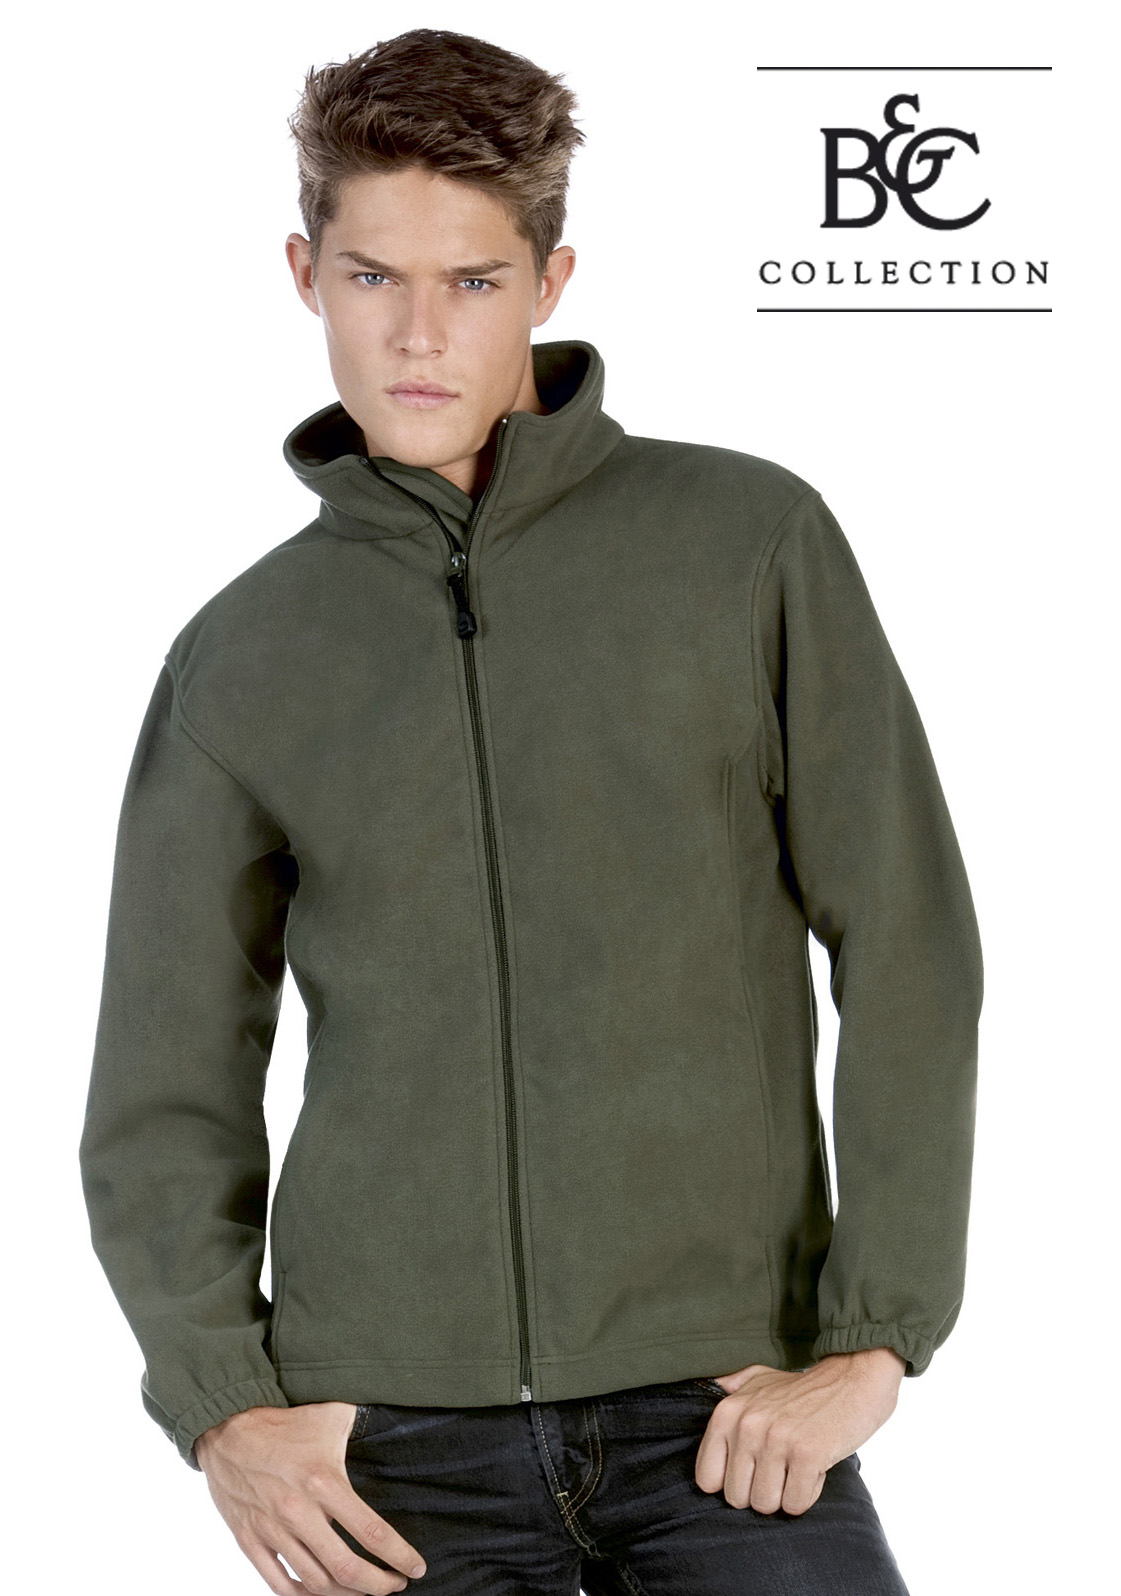 Windprotect fleece jacket